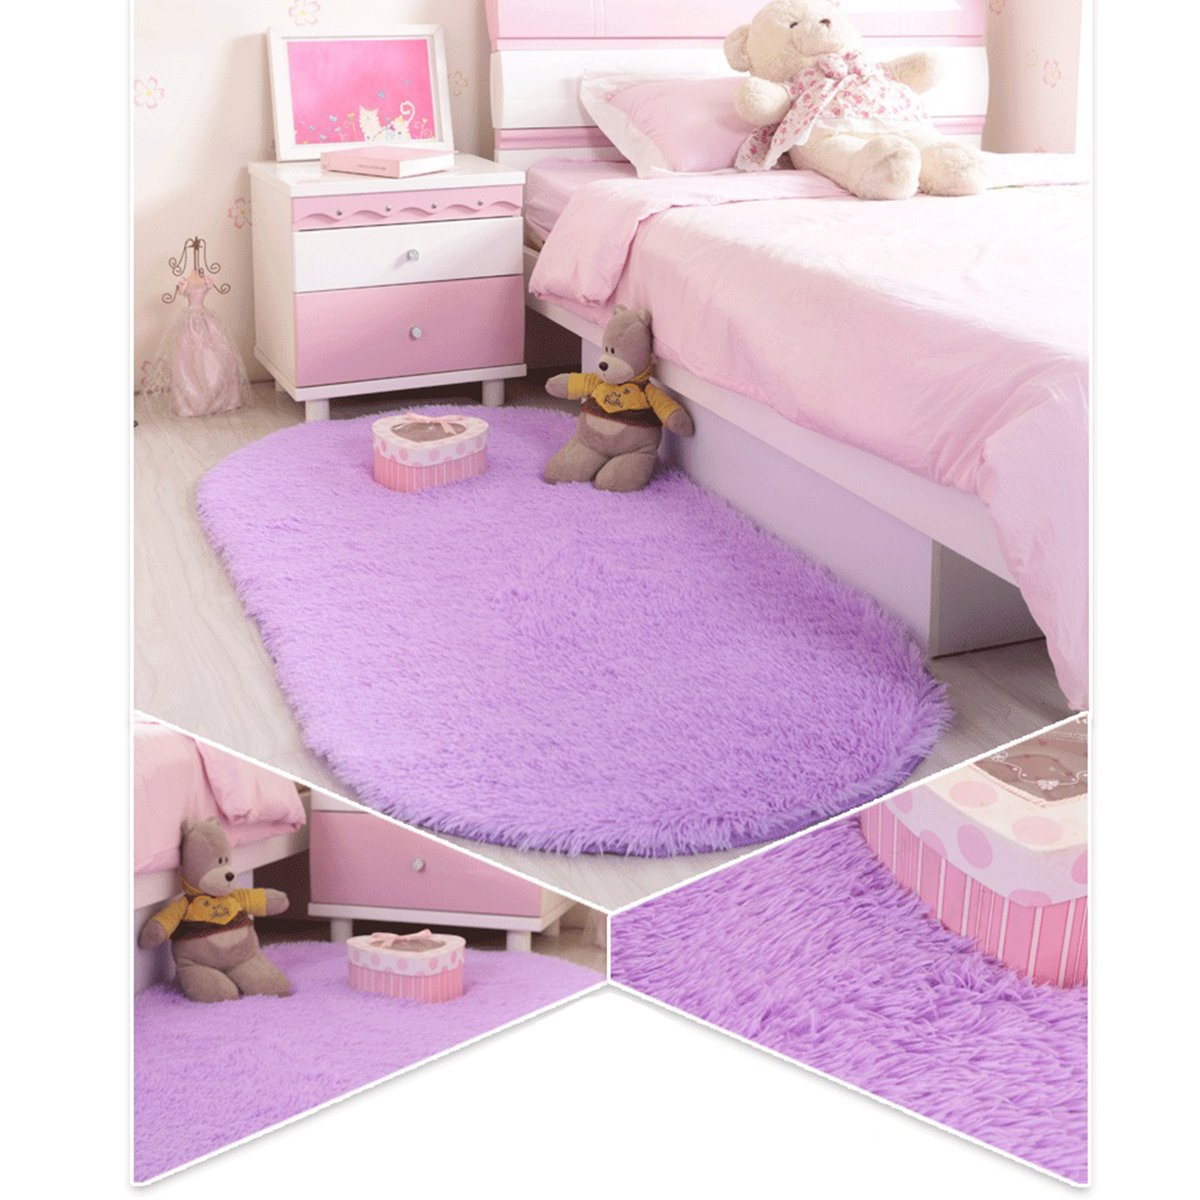 Justdolife Room Area Rug Non Slip Ultra Thick Fluffy Shag Area Rug Kids Carpet Shag Collection